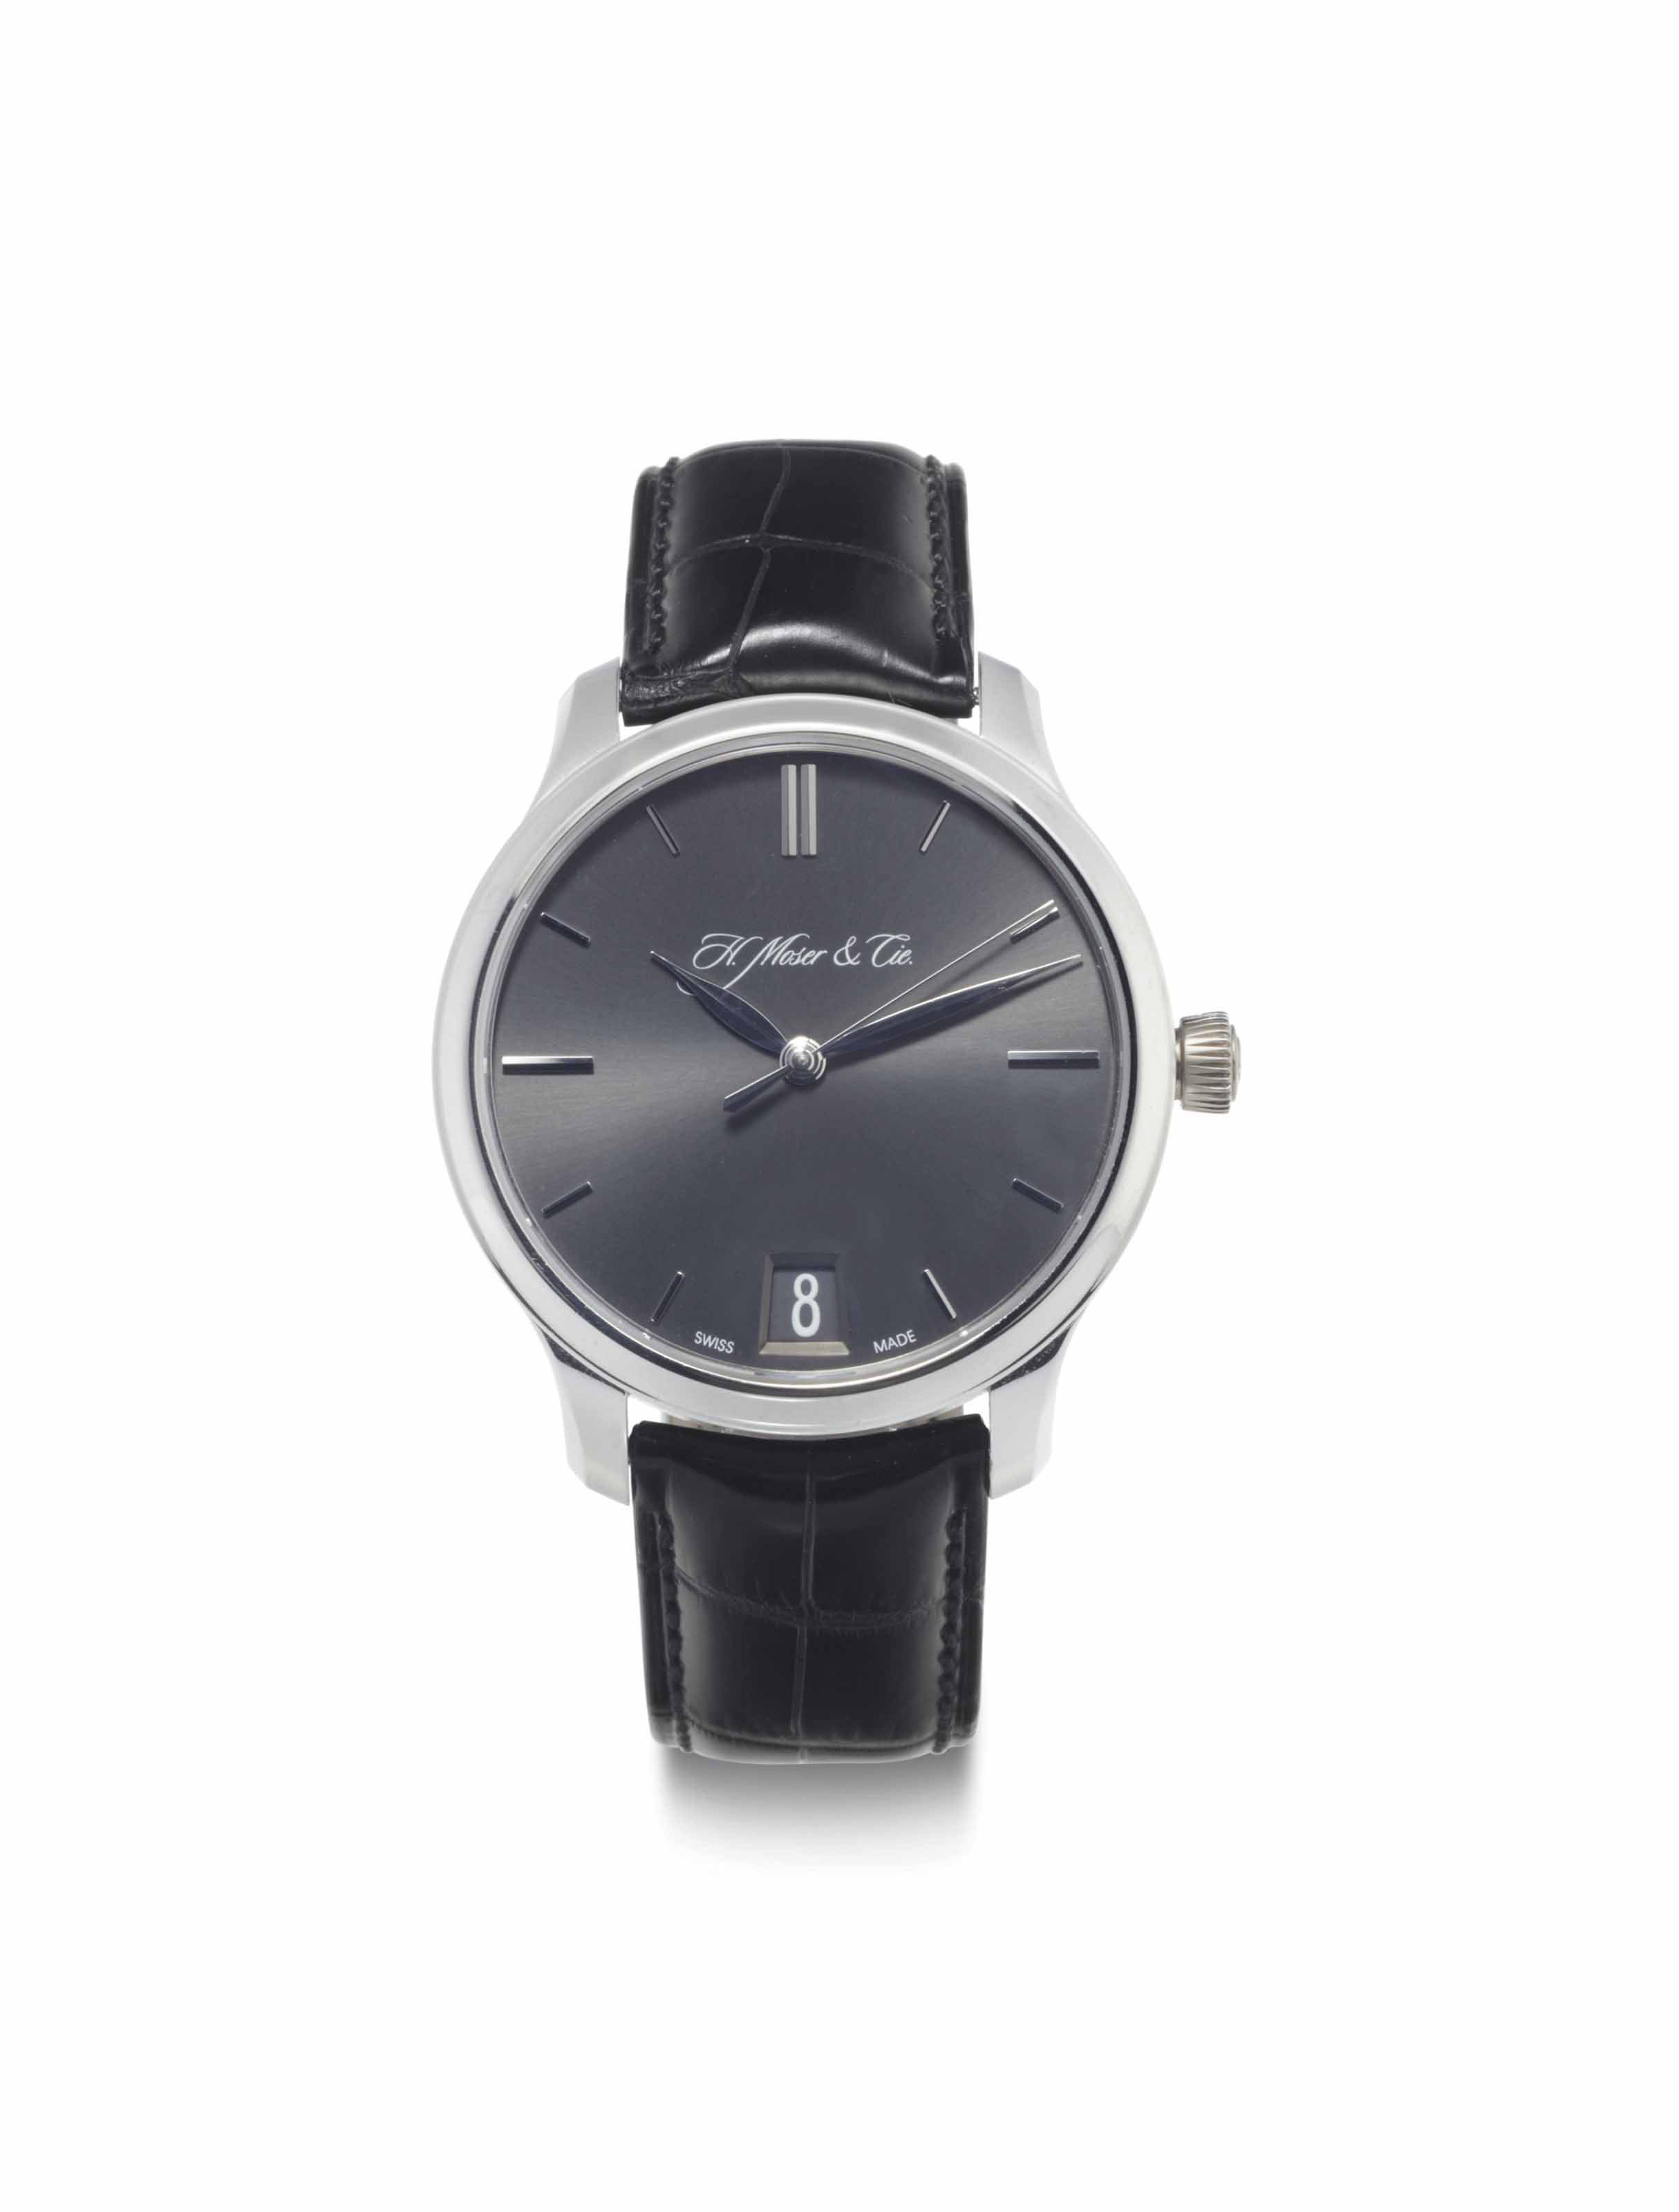 H. Moser & Cie. A Fine Platinum Wristwatch with Date and Power Reserve